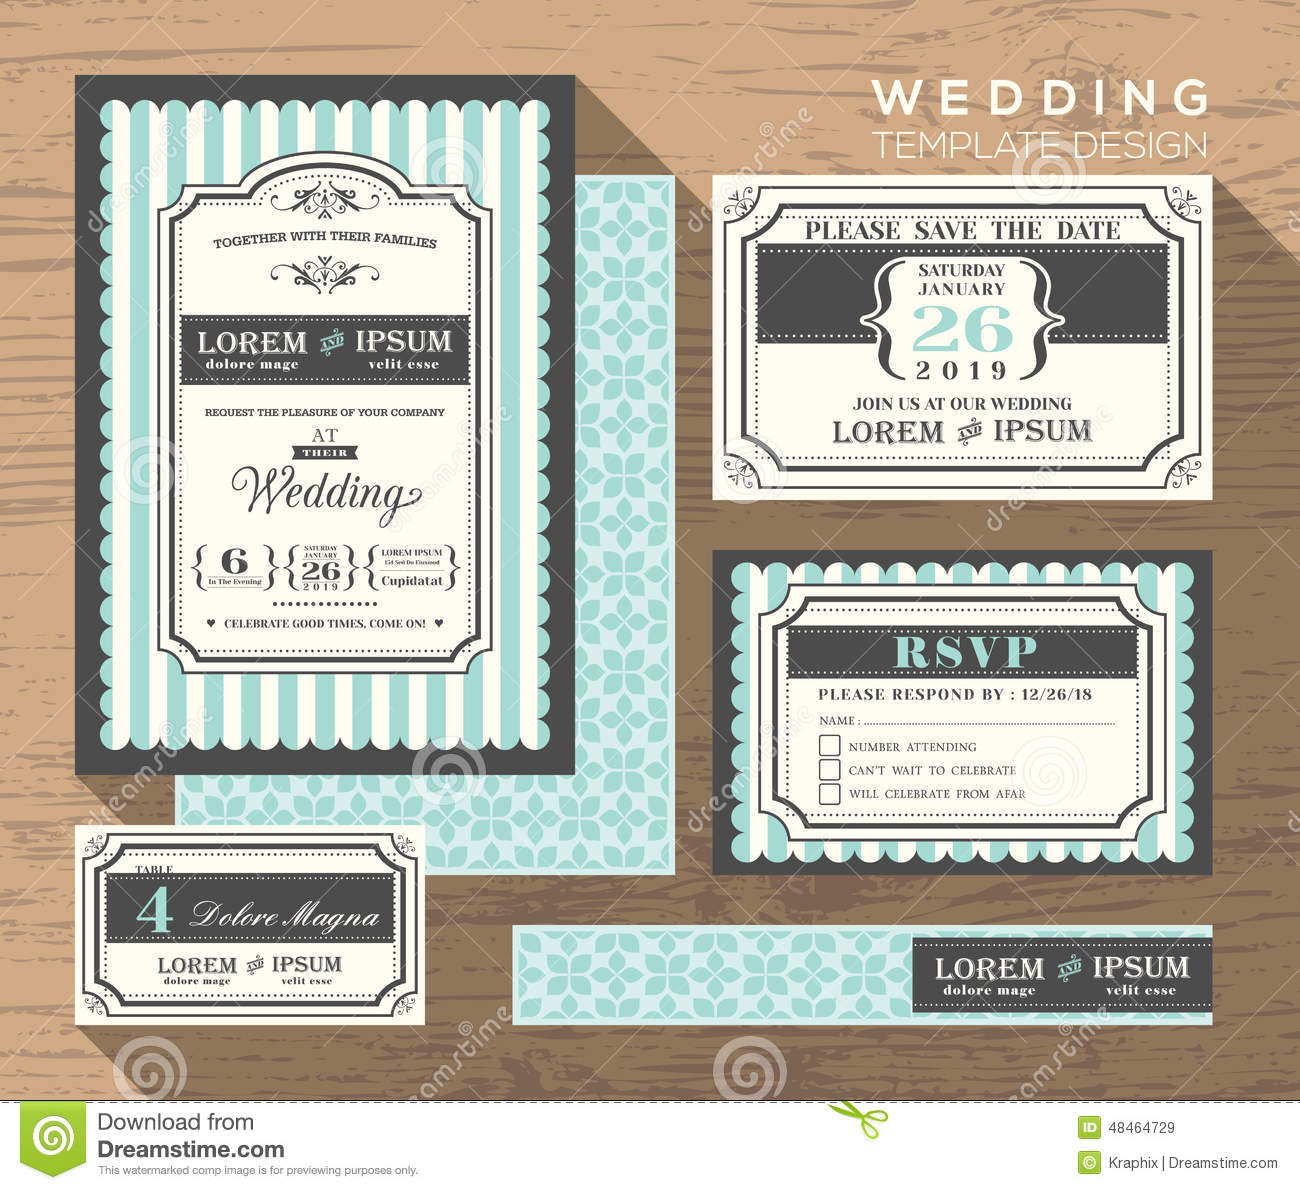 wedding invitation set design template vector place card response card